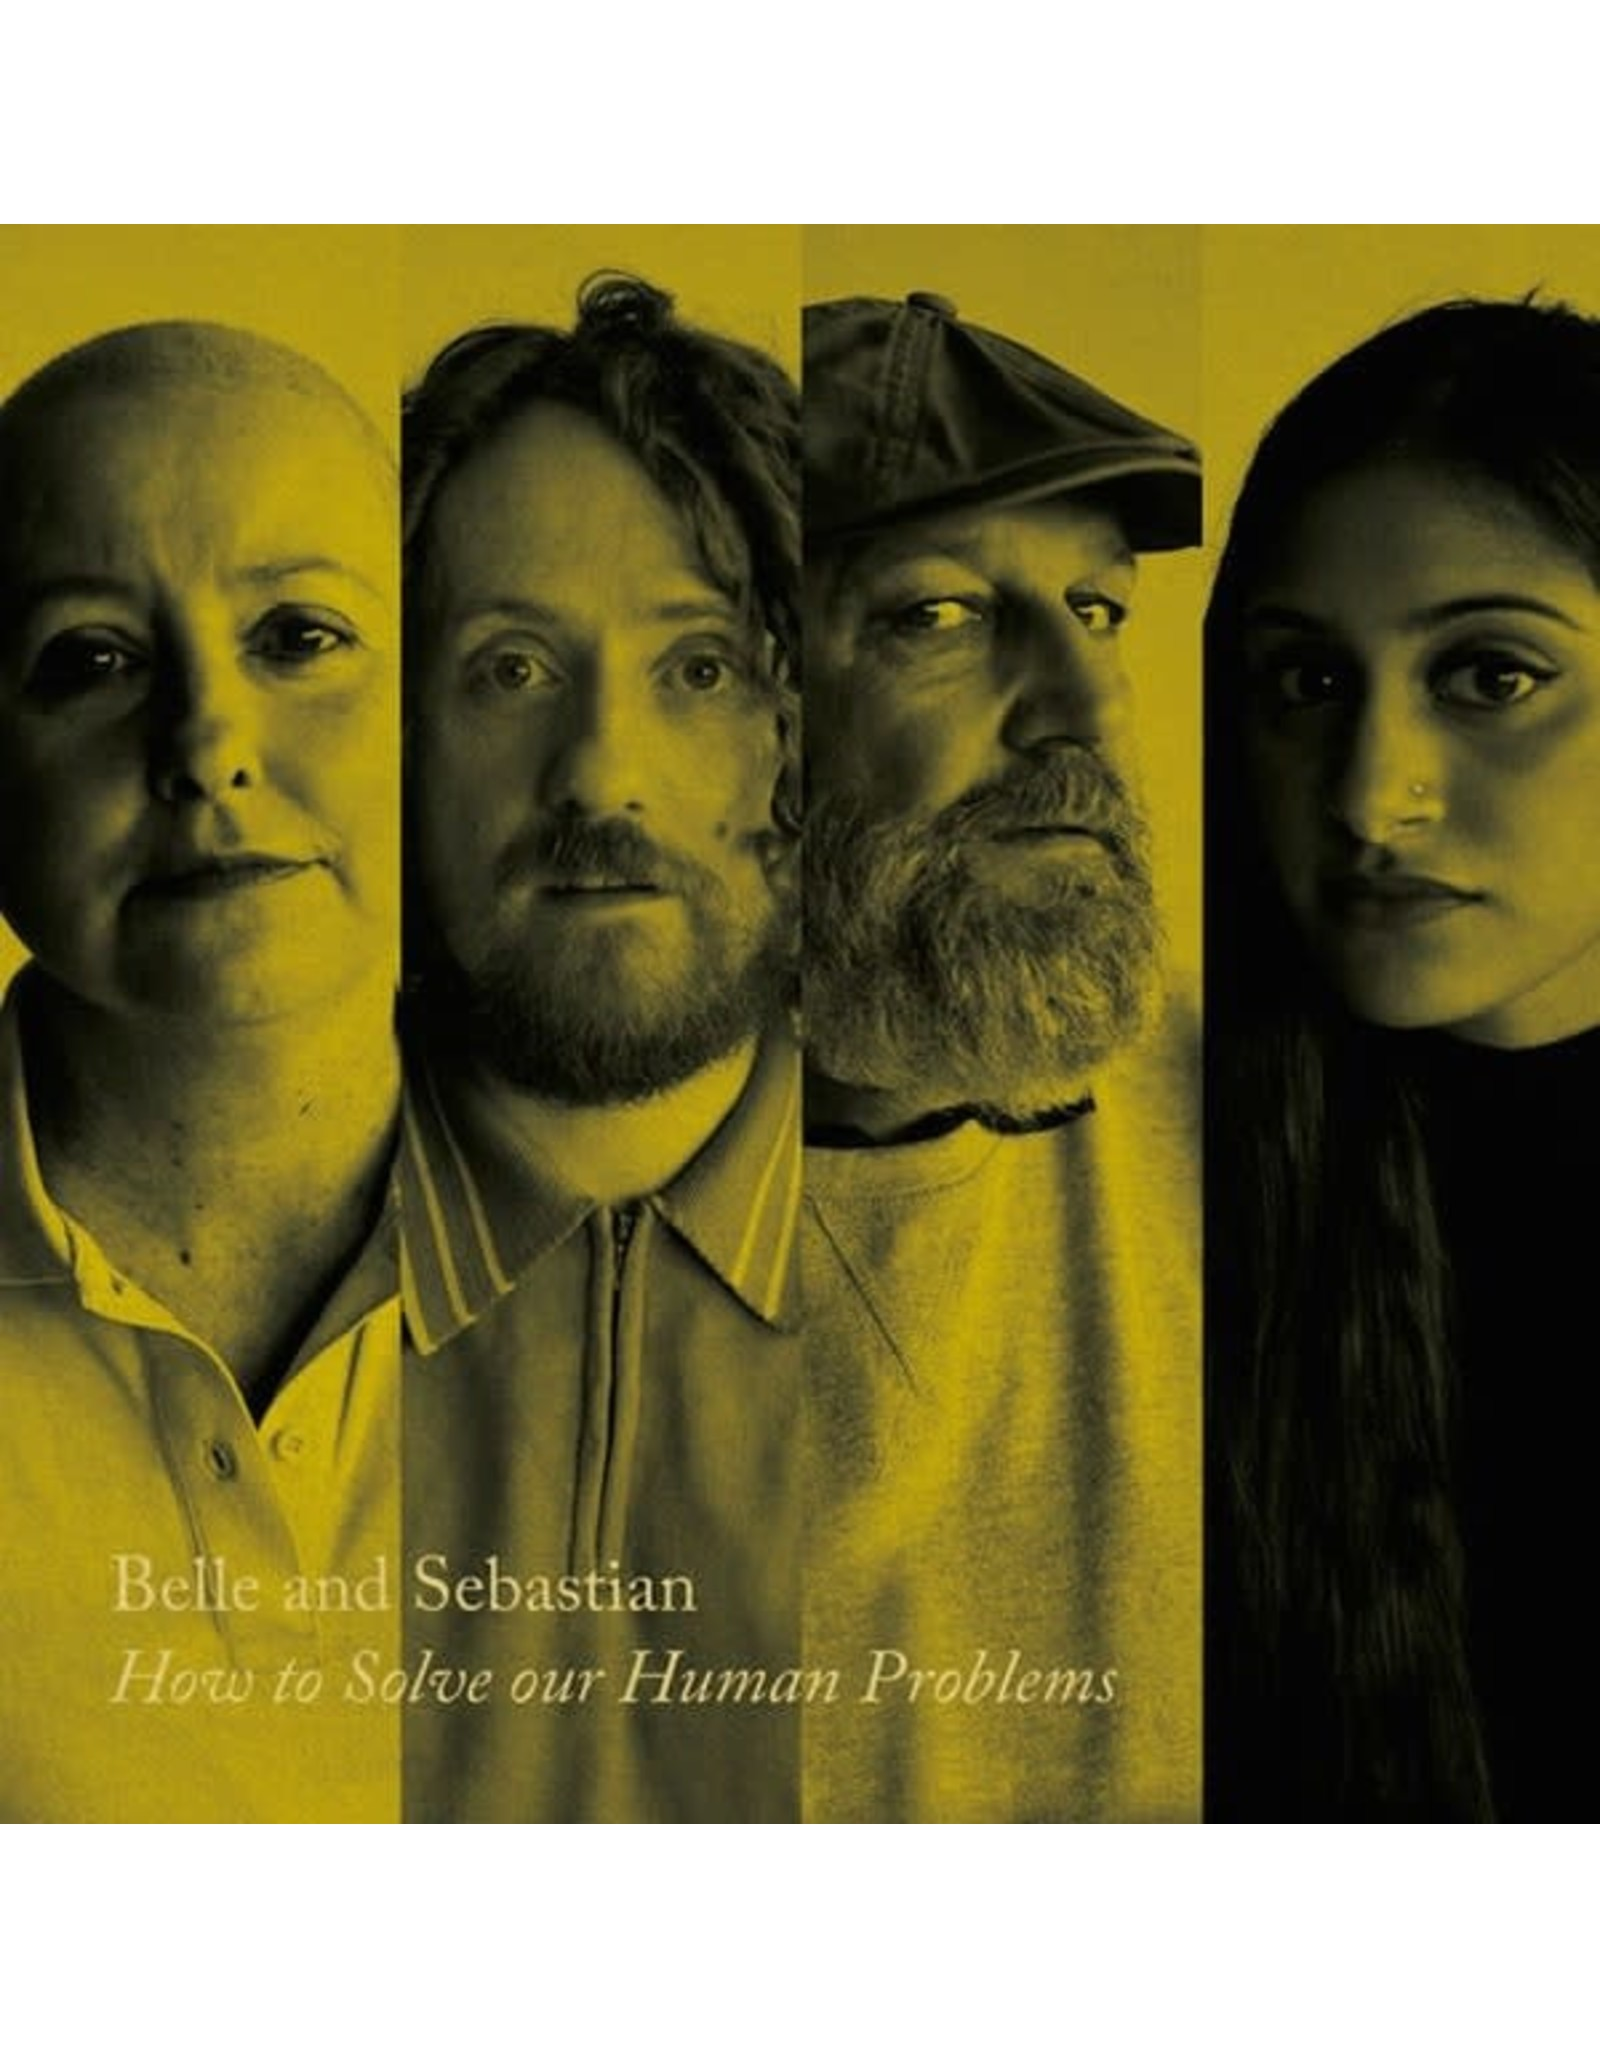 Belle and Sebastian - How to Solve our Human Problems Part 2 EP